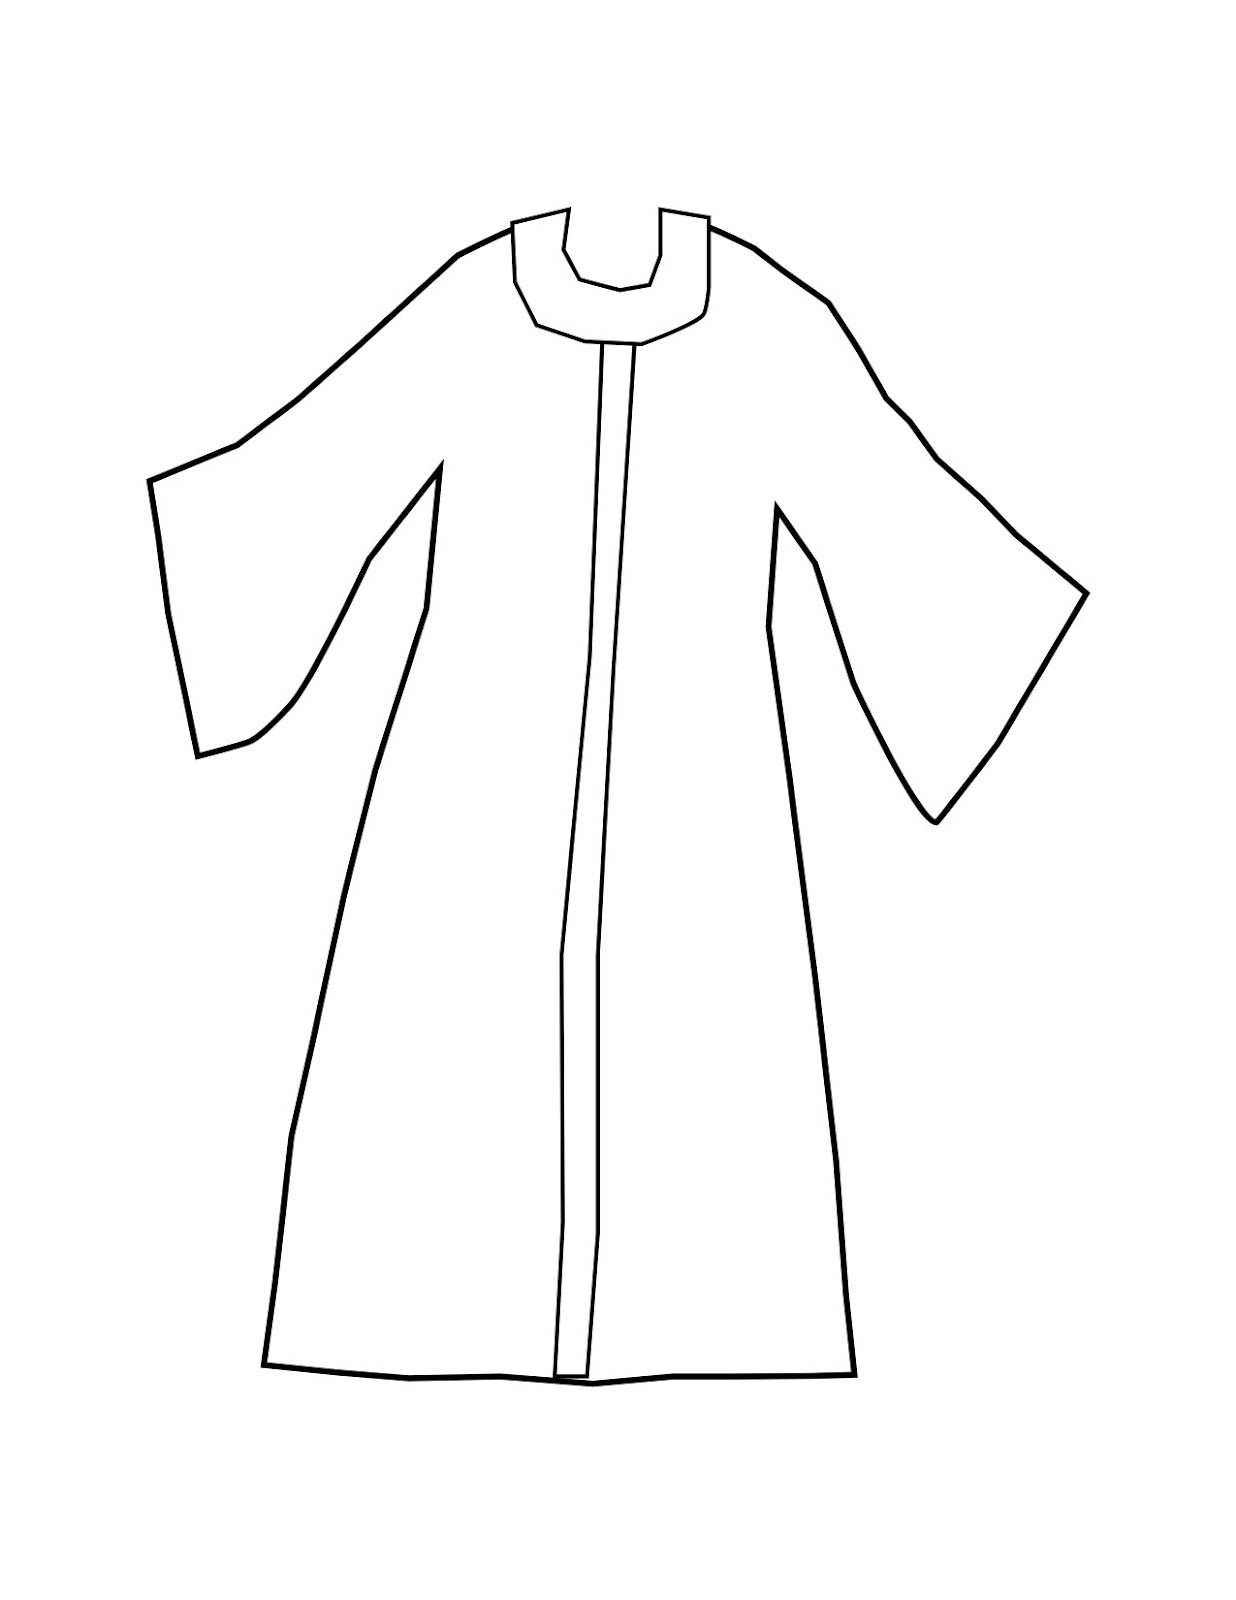 Joseph coloring pages printable